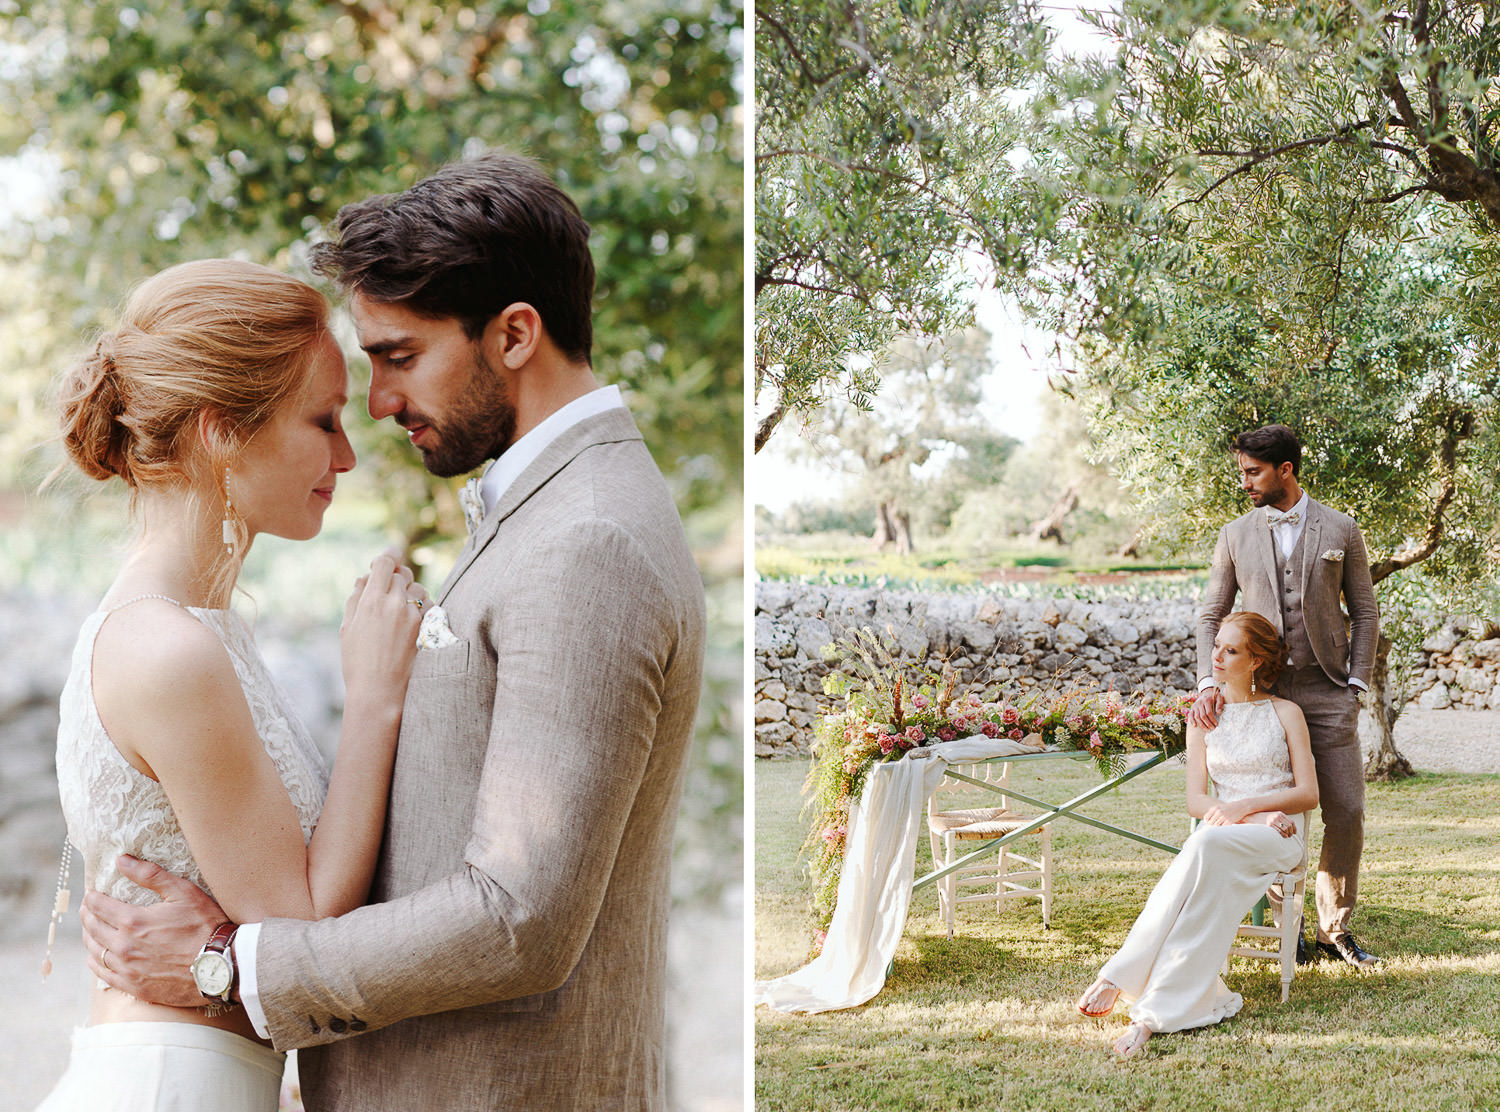 Al fresco wedding dinner in Masseria - Puglia elopement | Italian wedding photographer